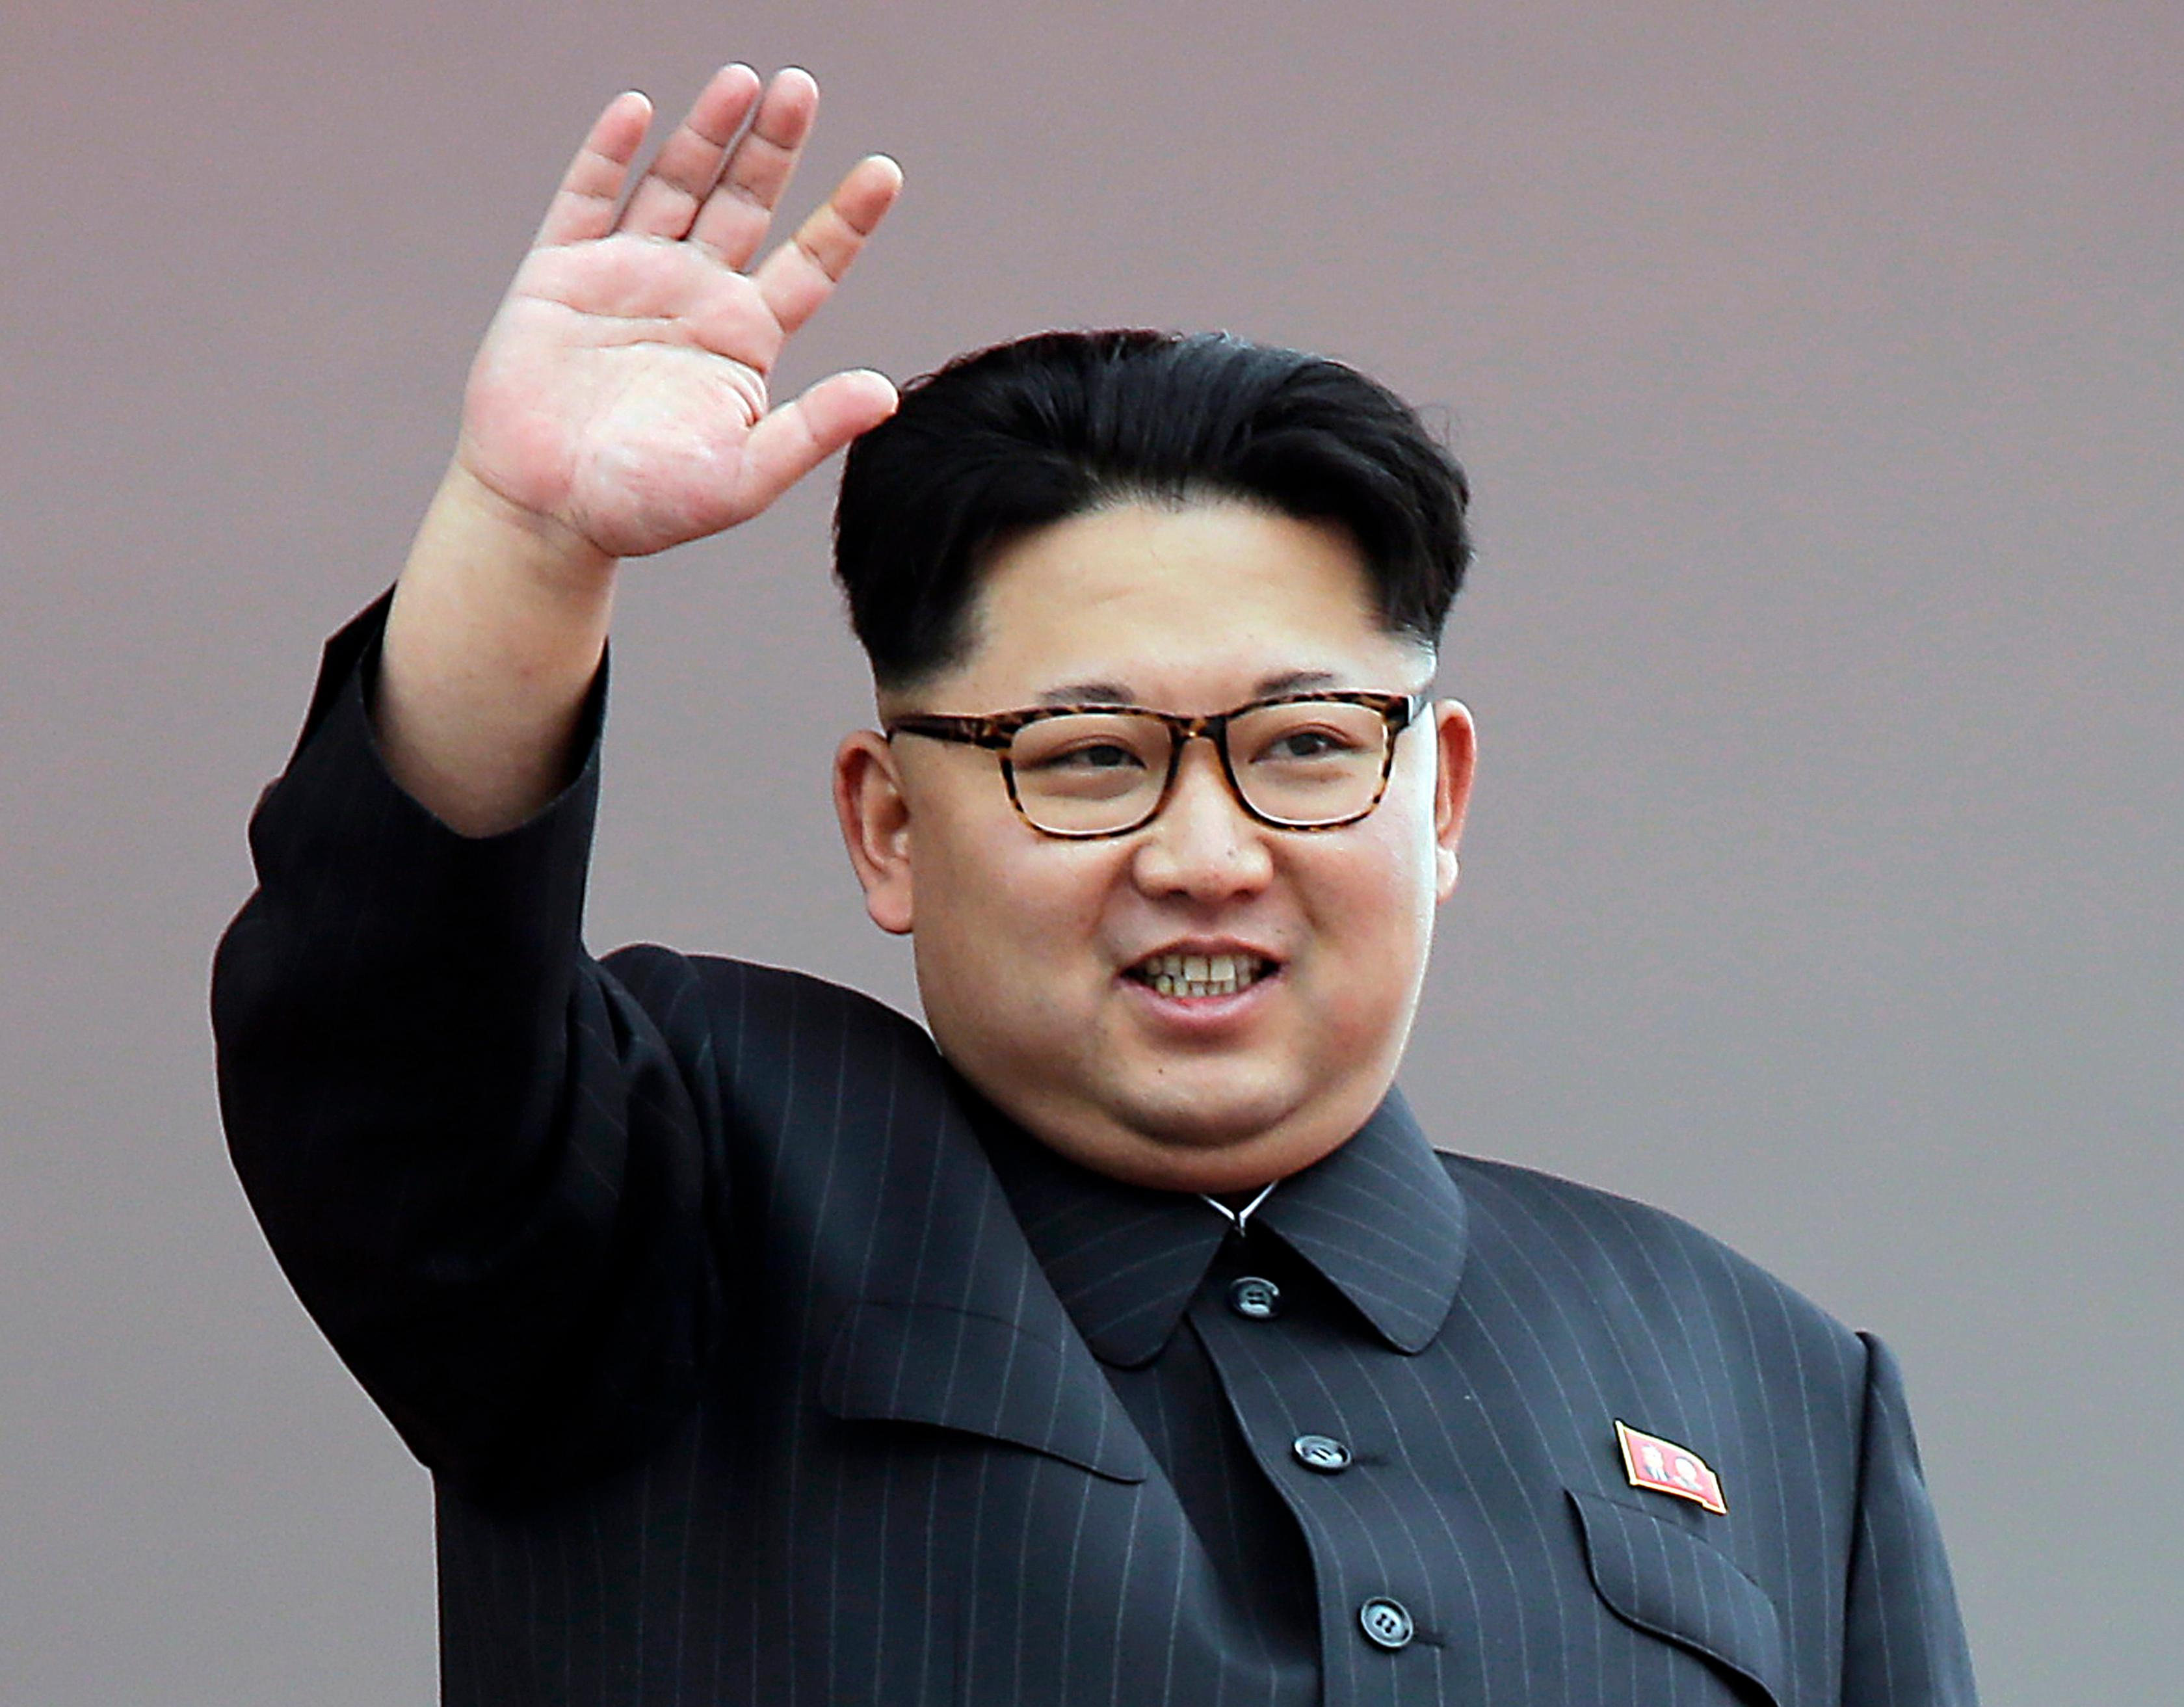 FILE - In this May 10, 2016, file photo, North Korean leader Kim Jong Un waves at parade participants at the Kim Il Sung Square in Pyongyang, North Korea. When Kim Jong Un took the helm of North Korea in late 2011, speculation swirled around the young leader. What would he do for an economically backward authoritarian nation in a high-stakes nuclear standoff with its neighbors and Washington? Almost six years later, his rule has actually seen the economy improve, and when it comes to the nuclear drive, it's obvious that Kim Jong Un, who rattled nerves last week by test-firing his country's first intercontinental ballistic missile, has a more uncompromising stance than his late father, Kim Jong Il.  (AP Photo/Wong Maye-E, File)